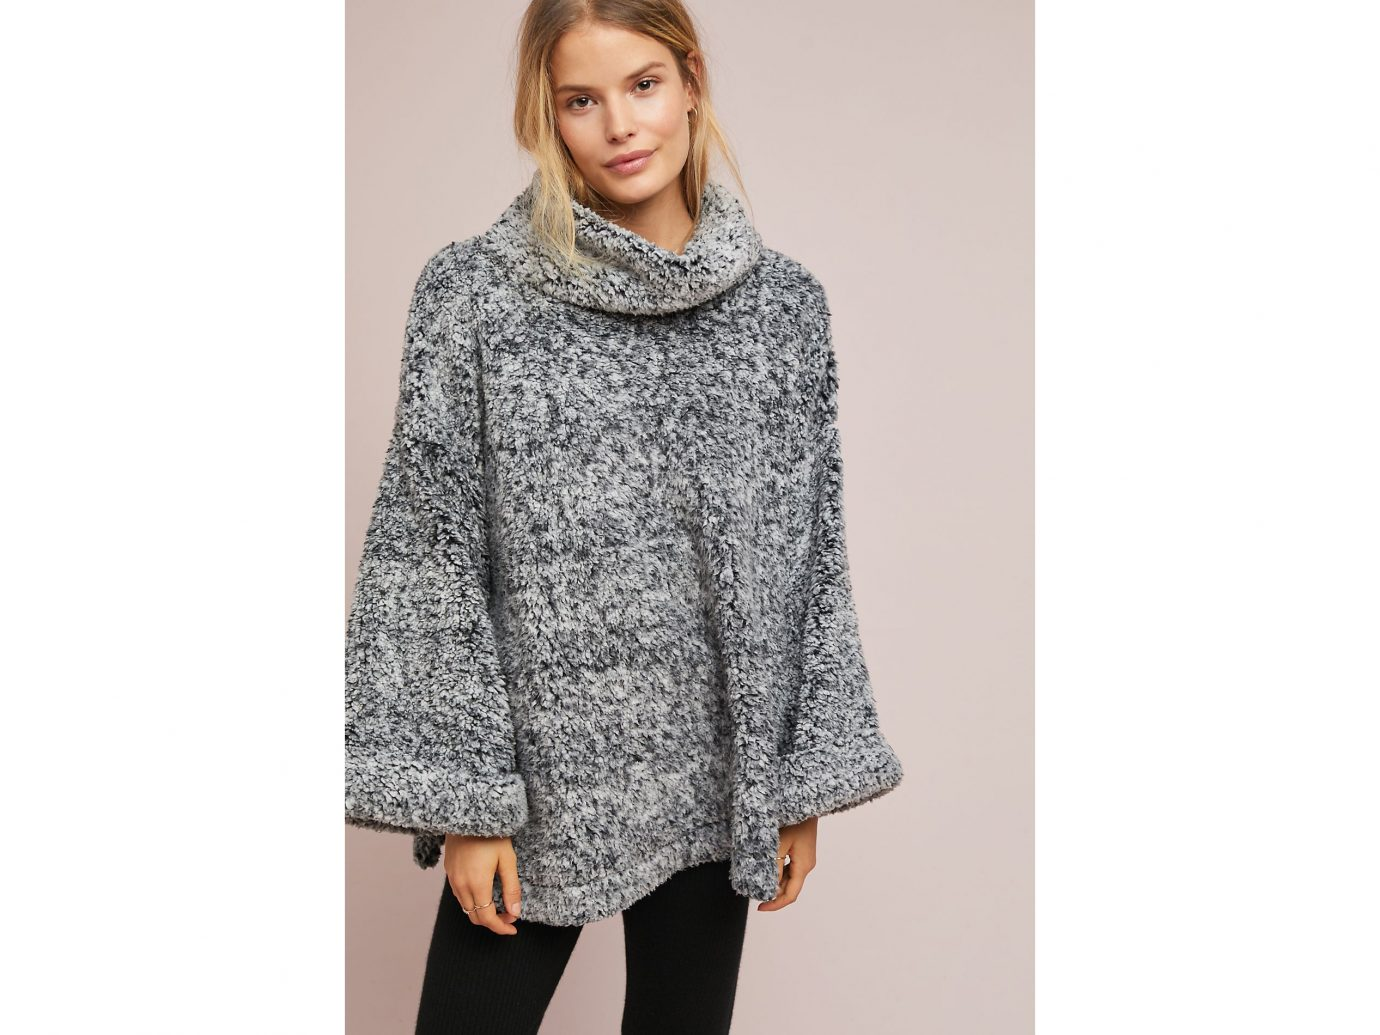 Turtleneck: Anthropologie Sherpa Turtleneck Pullover